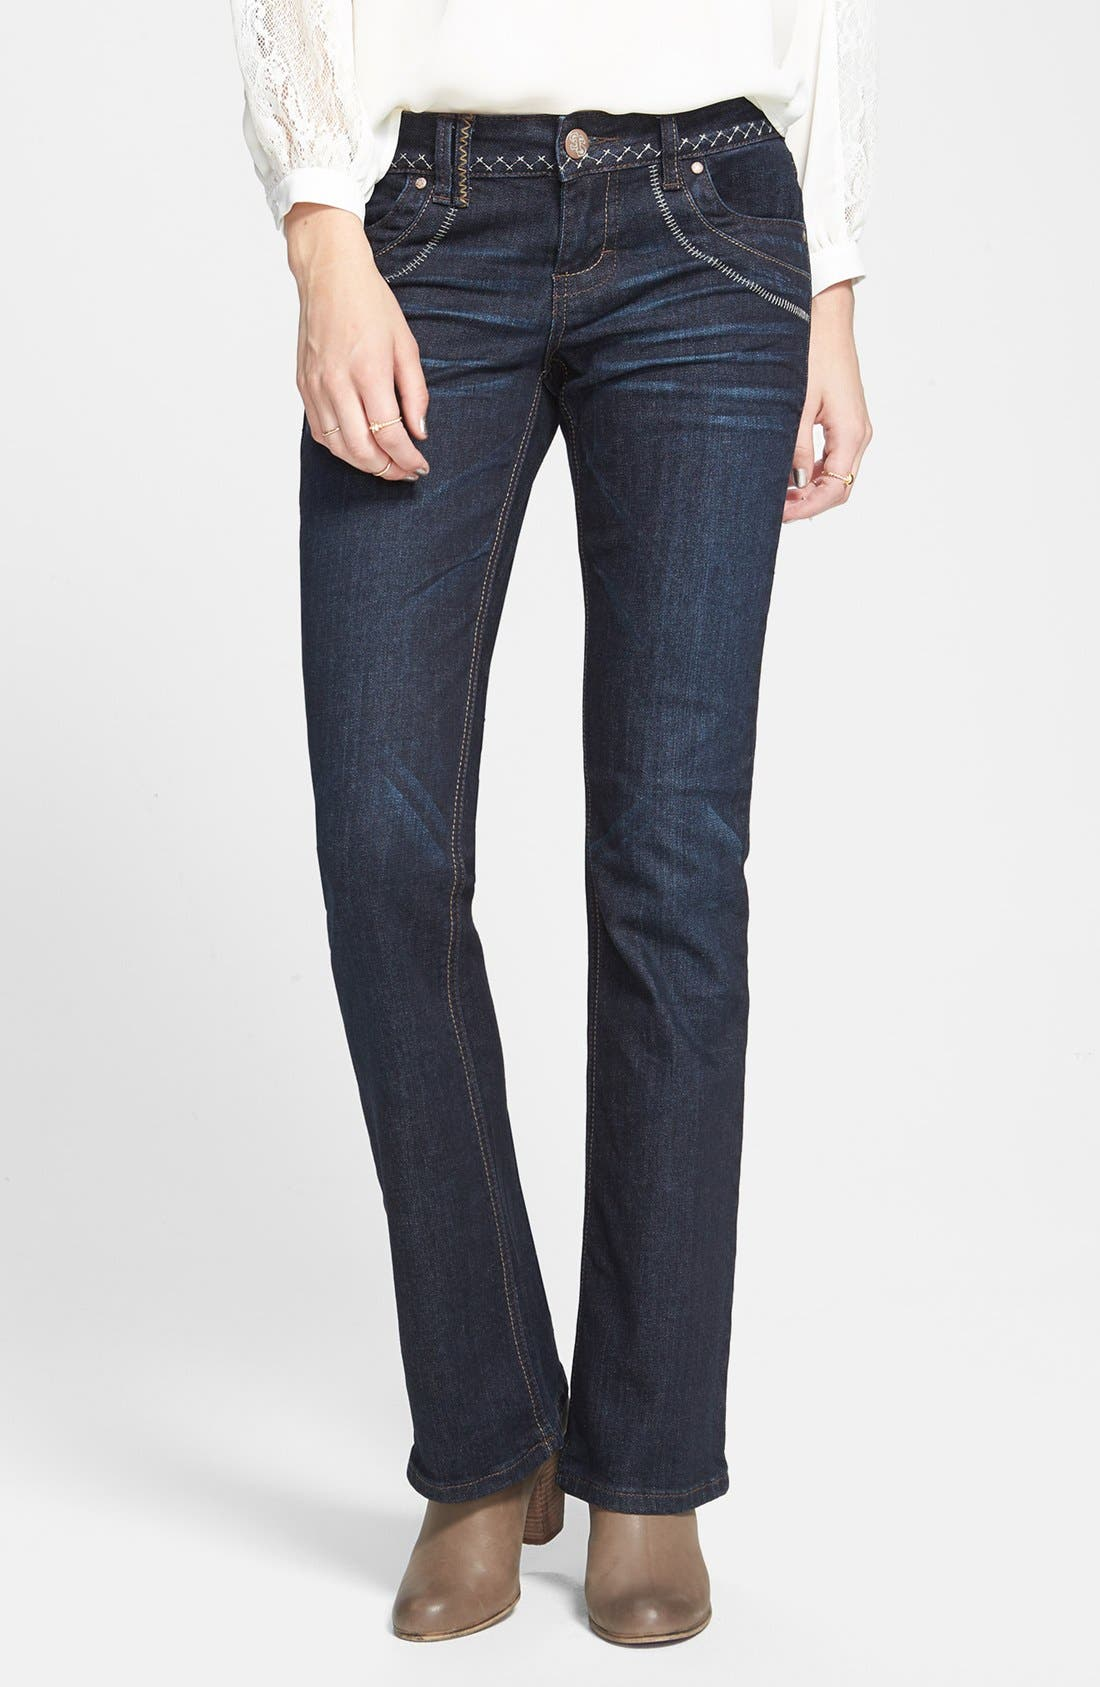 Alternate Image 1 Selected - STS Blue 'Coranada' Embroidered Bootcut Jeans (Medium) (Juniors) (Online Only)